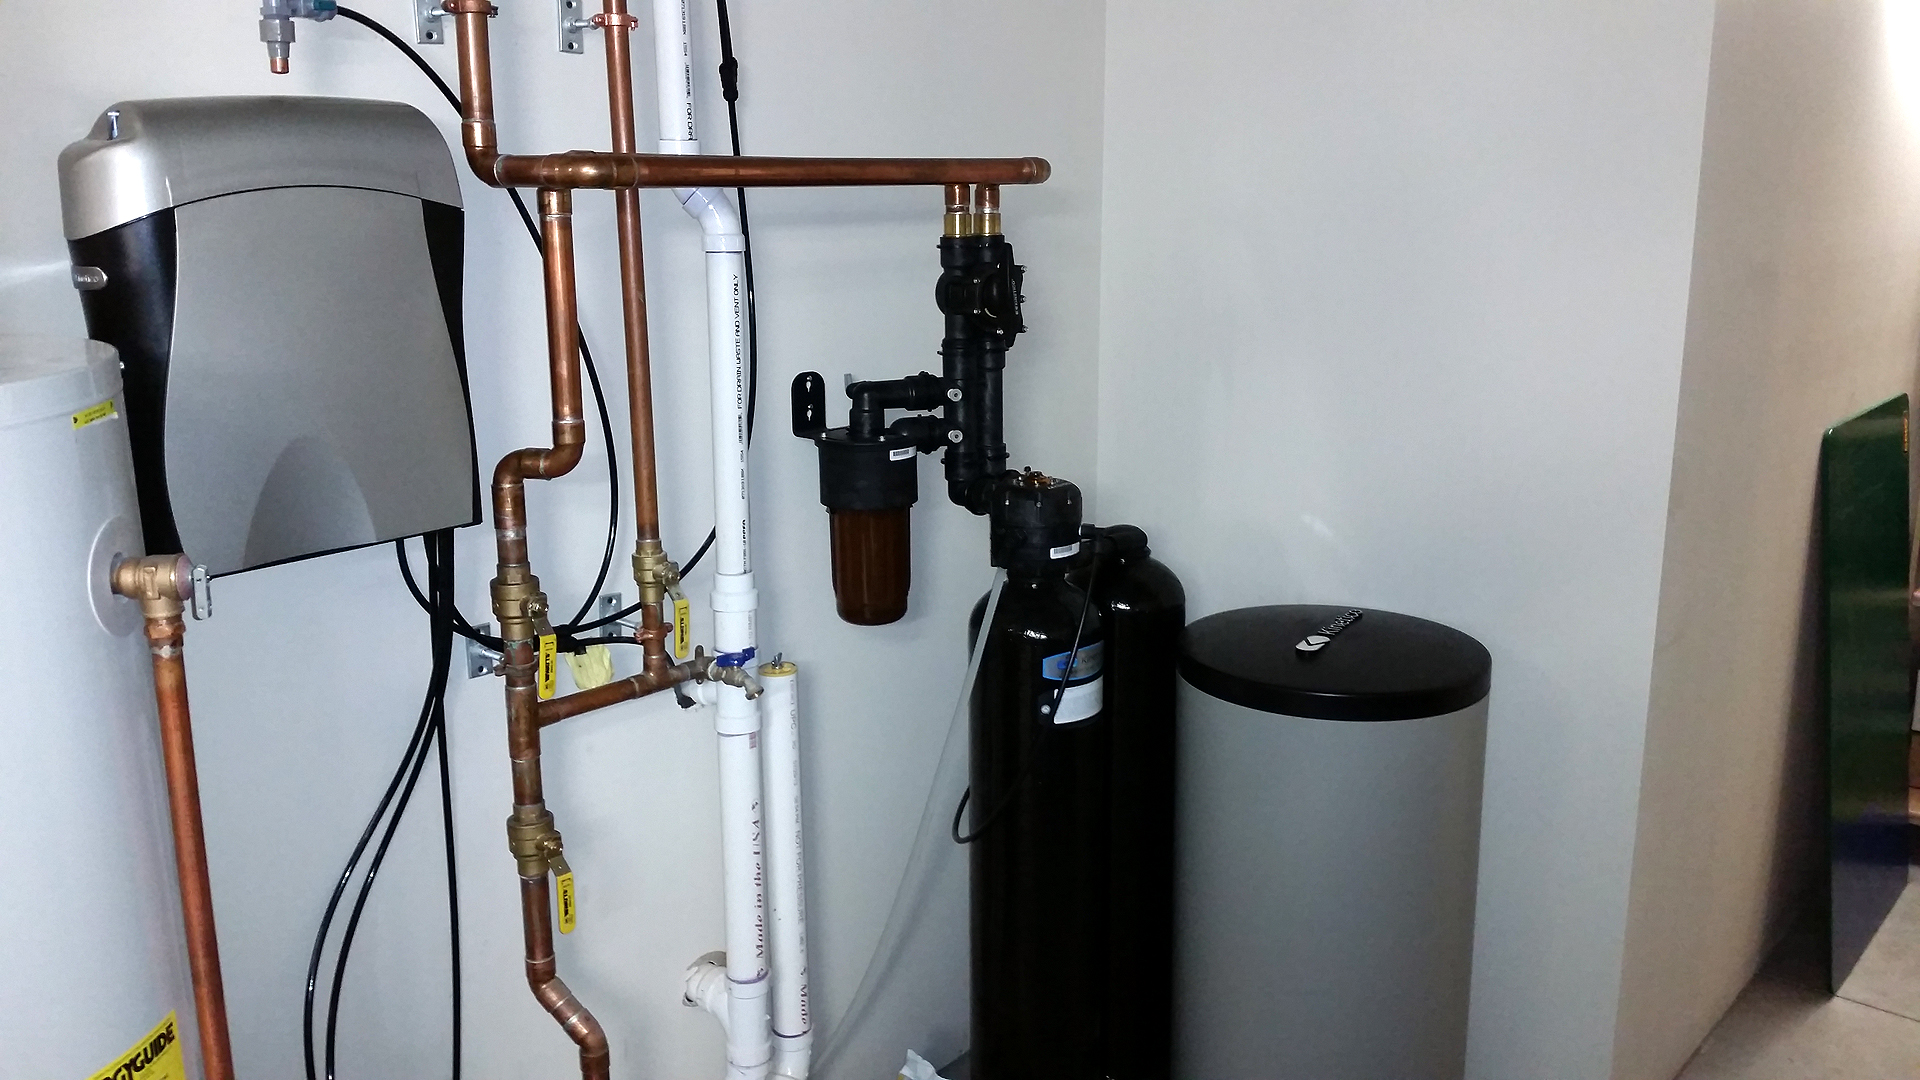 Kinetico S250 water softener and K5 drinking station installed in Bettendorf